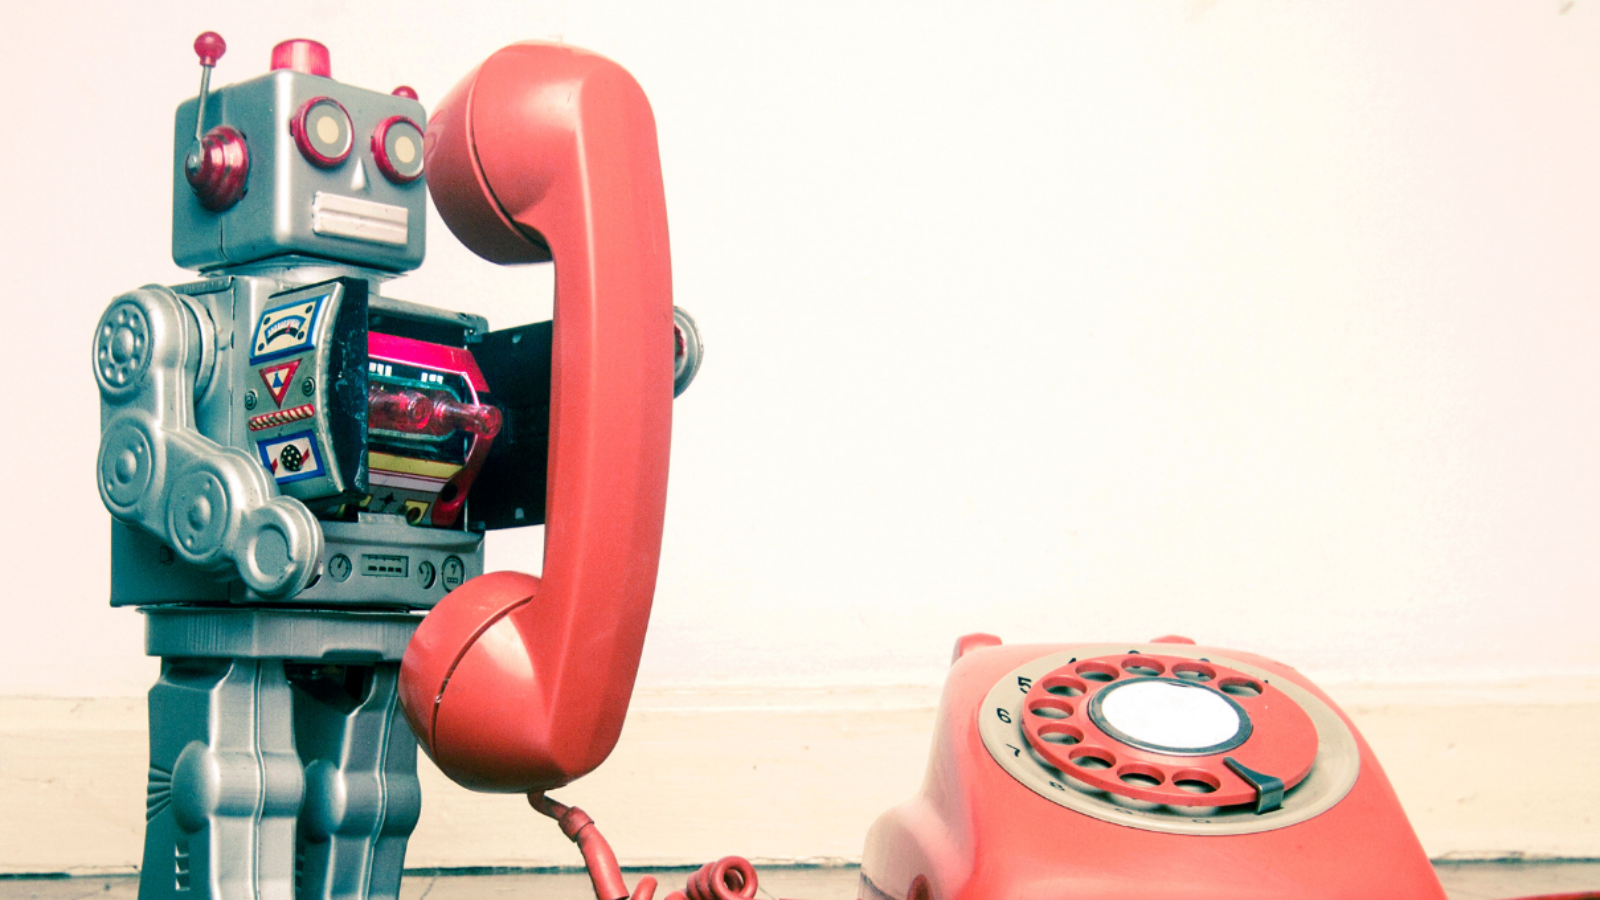 Talking toys including a robot talking on an old rotary phone